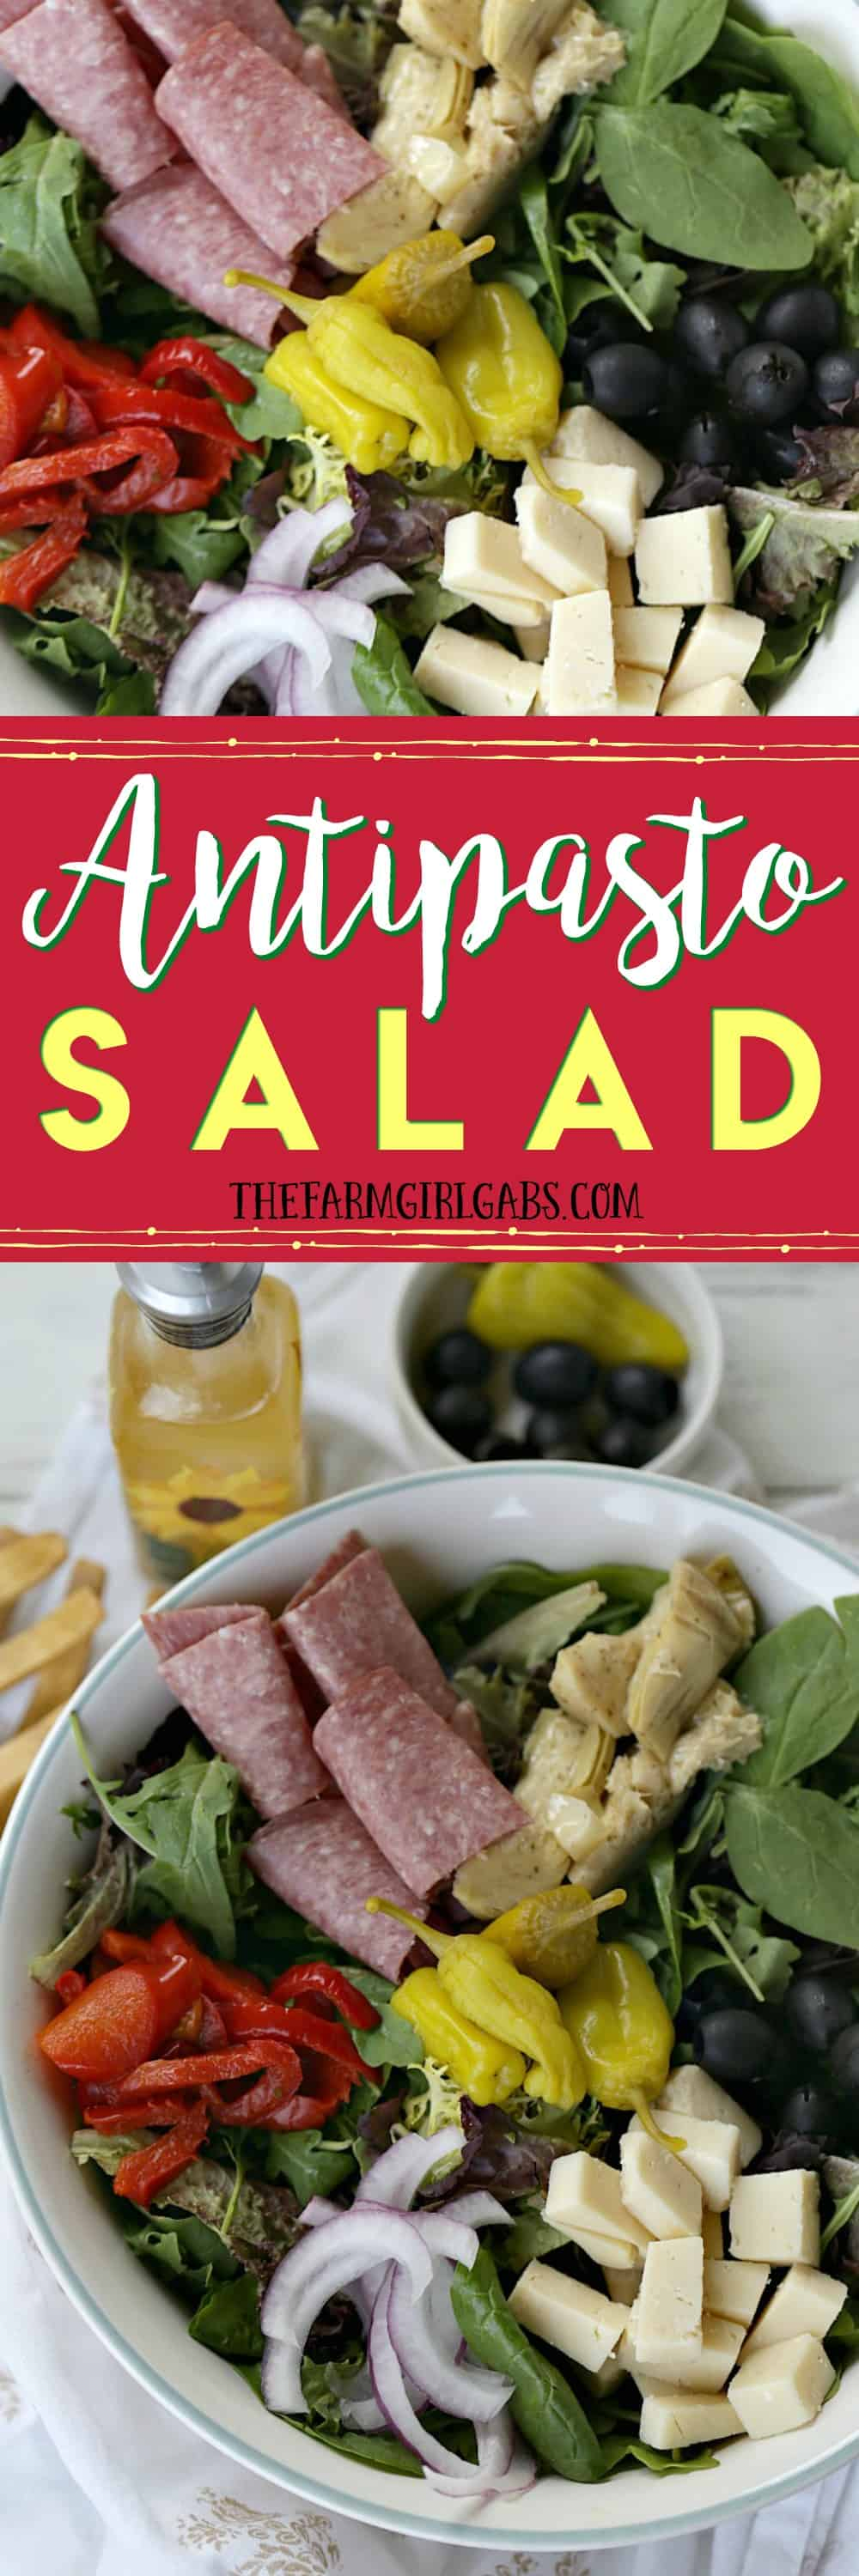 Why save this Easy Antipasto Salad for a special occasion? It's an easy Italian salad recipe that can be enjoyed anytime. #Ad #CookingWithCoke